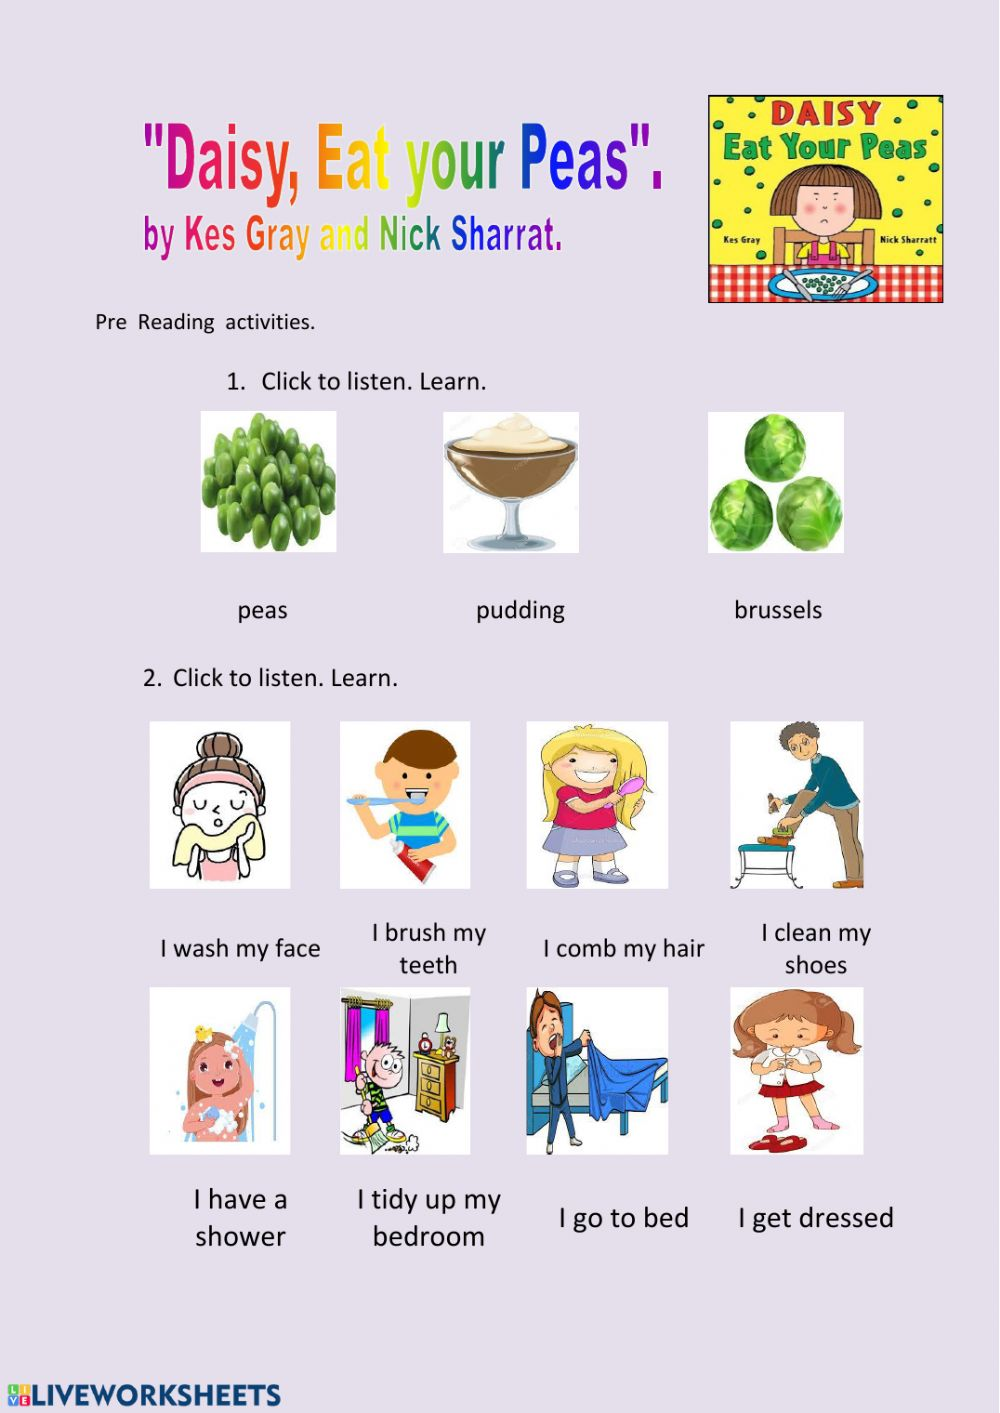 Pre Reading Worksheet Daisy Eat your Peas - Interactive ...